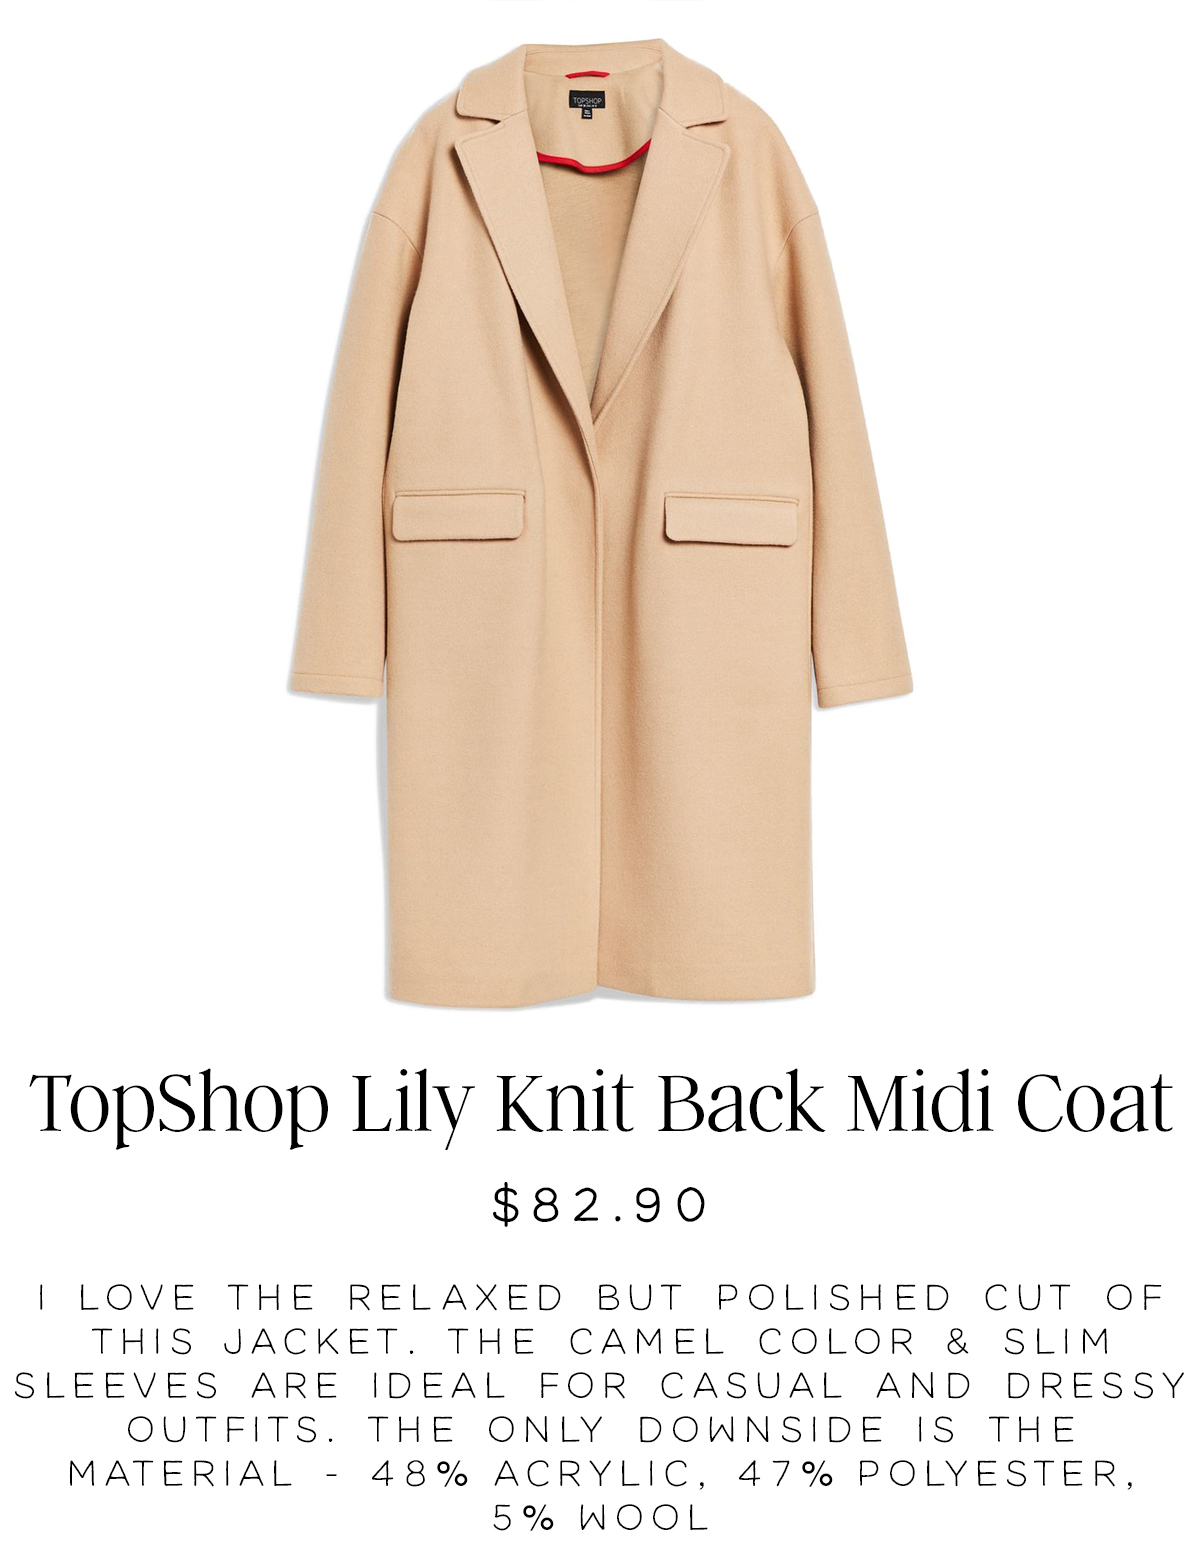 nordstrom-anniversary-sale-topshop-lily-coat.jpg